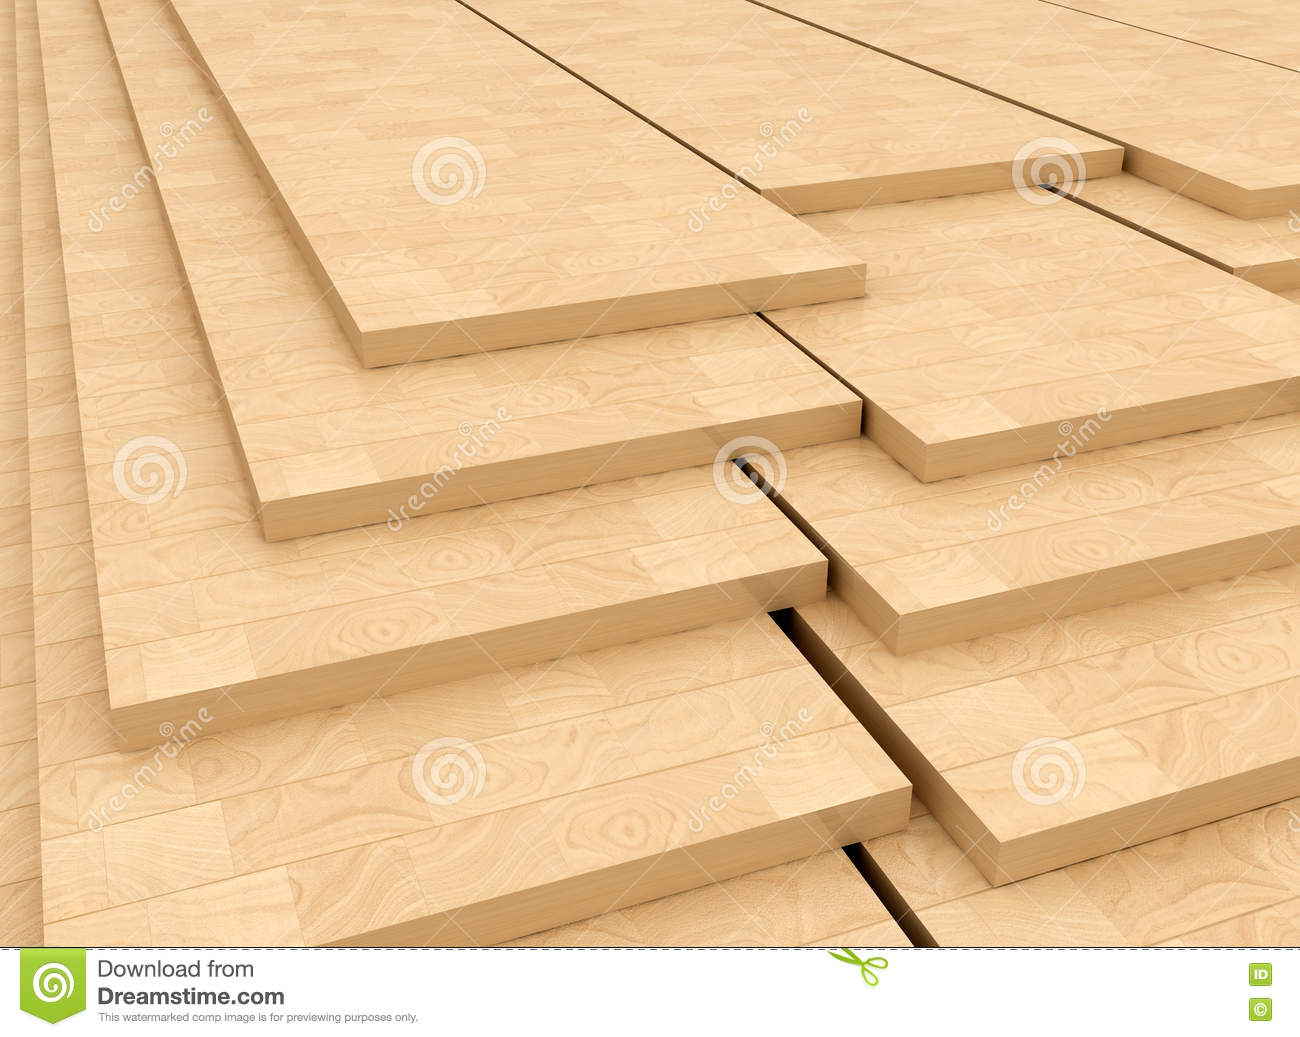 Wood panels stock illustration of material